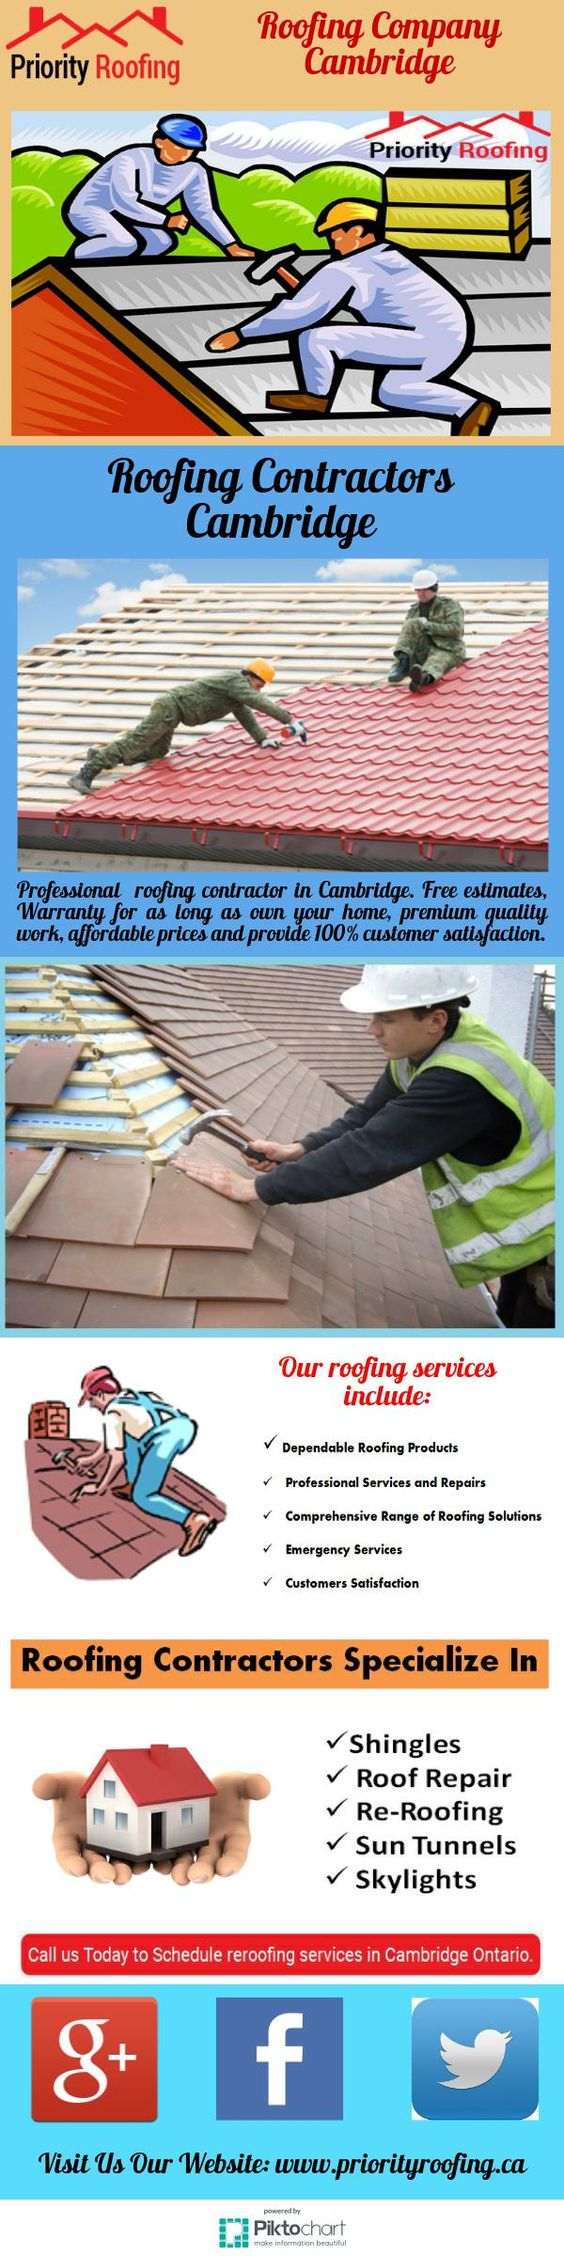 Priority Roofing Is A Trusted And Reliable Roofing Company With Experienced  Roofers Serving Cambridge Waterloo Guelph Kitchener. Call 519 489 20\u2026  Sc 1 ...